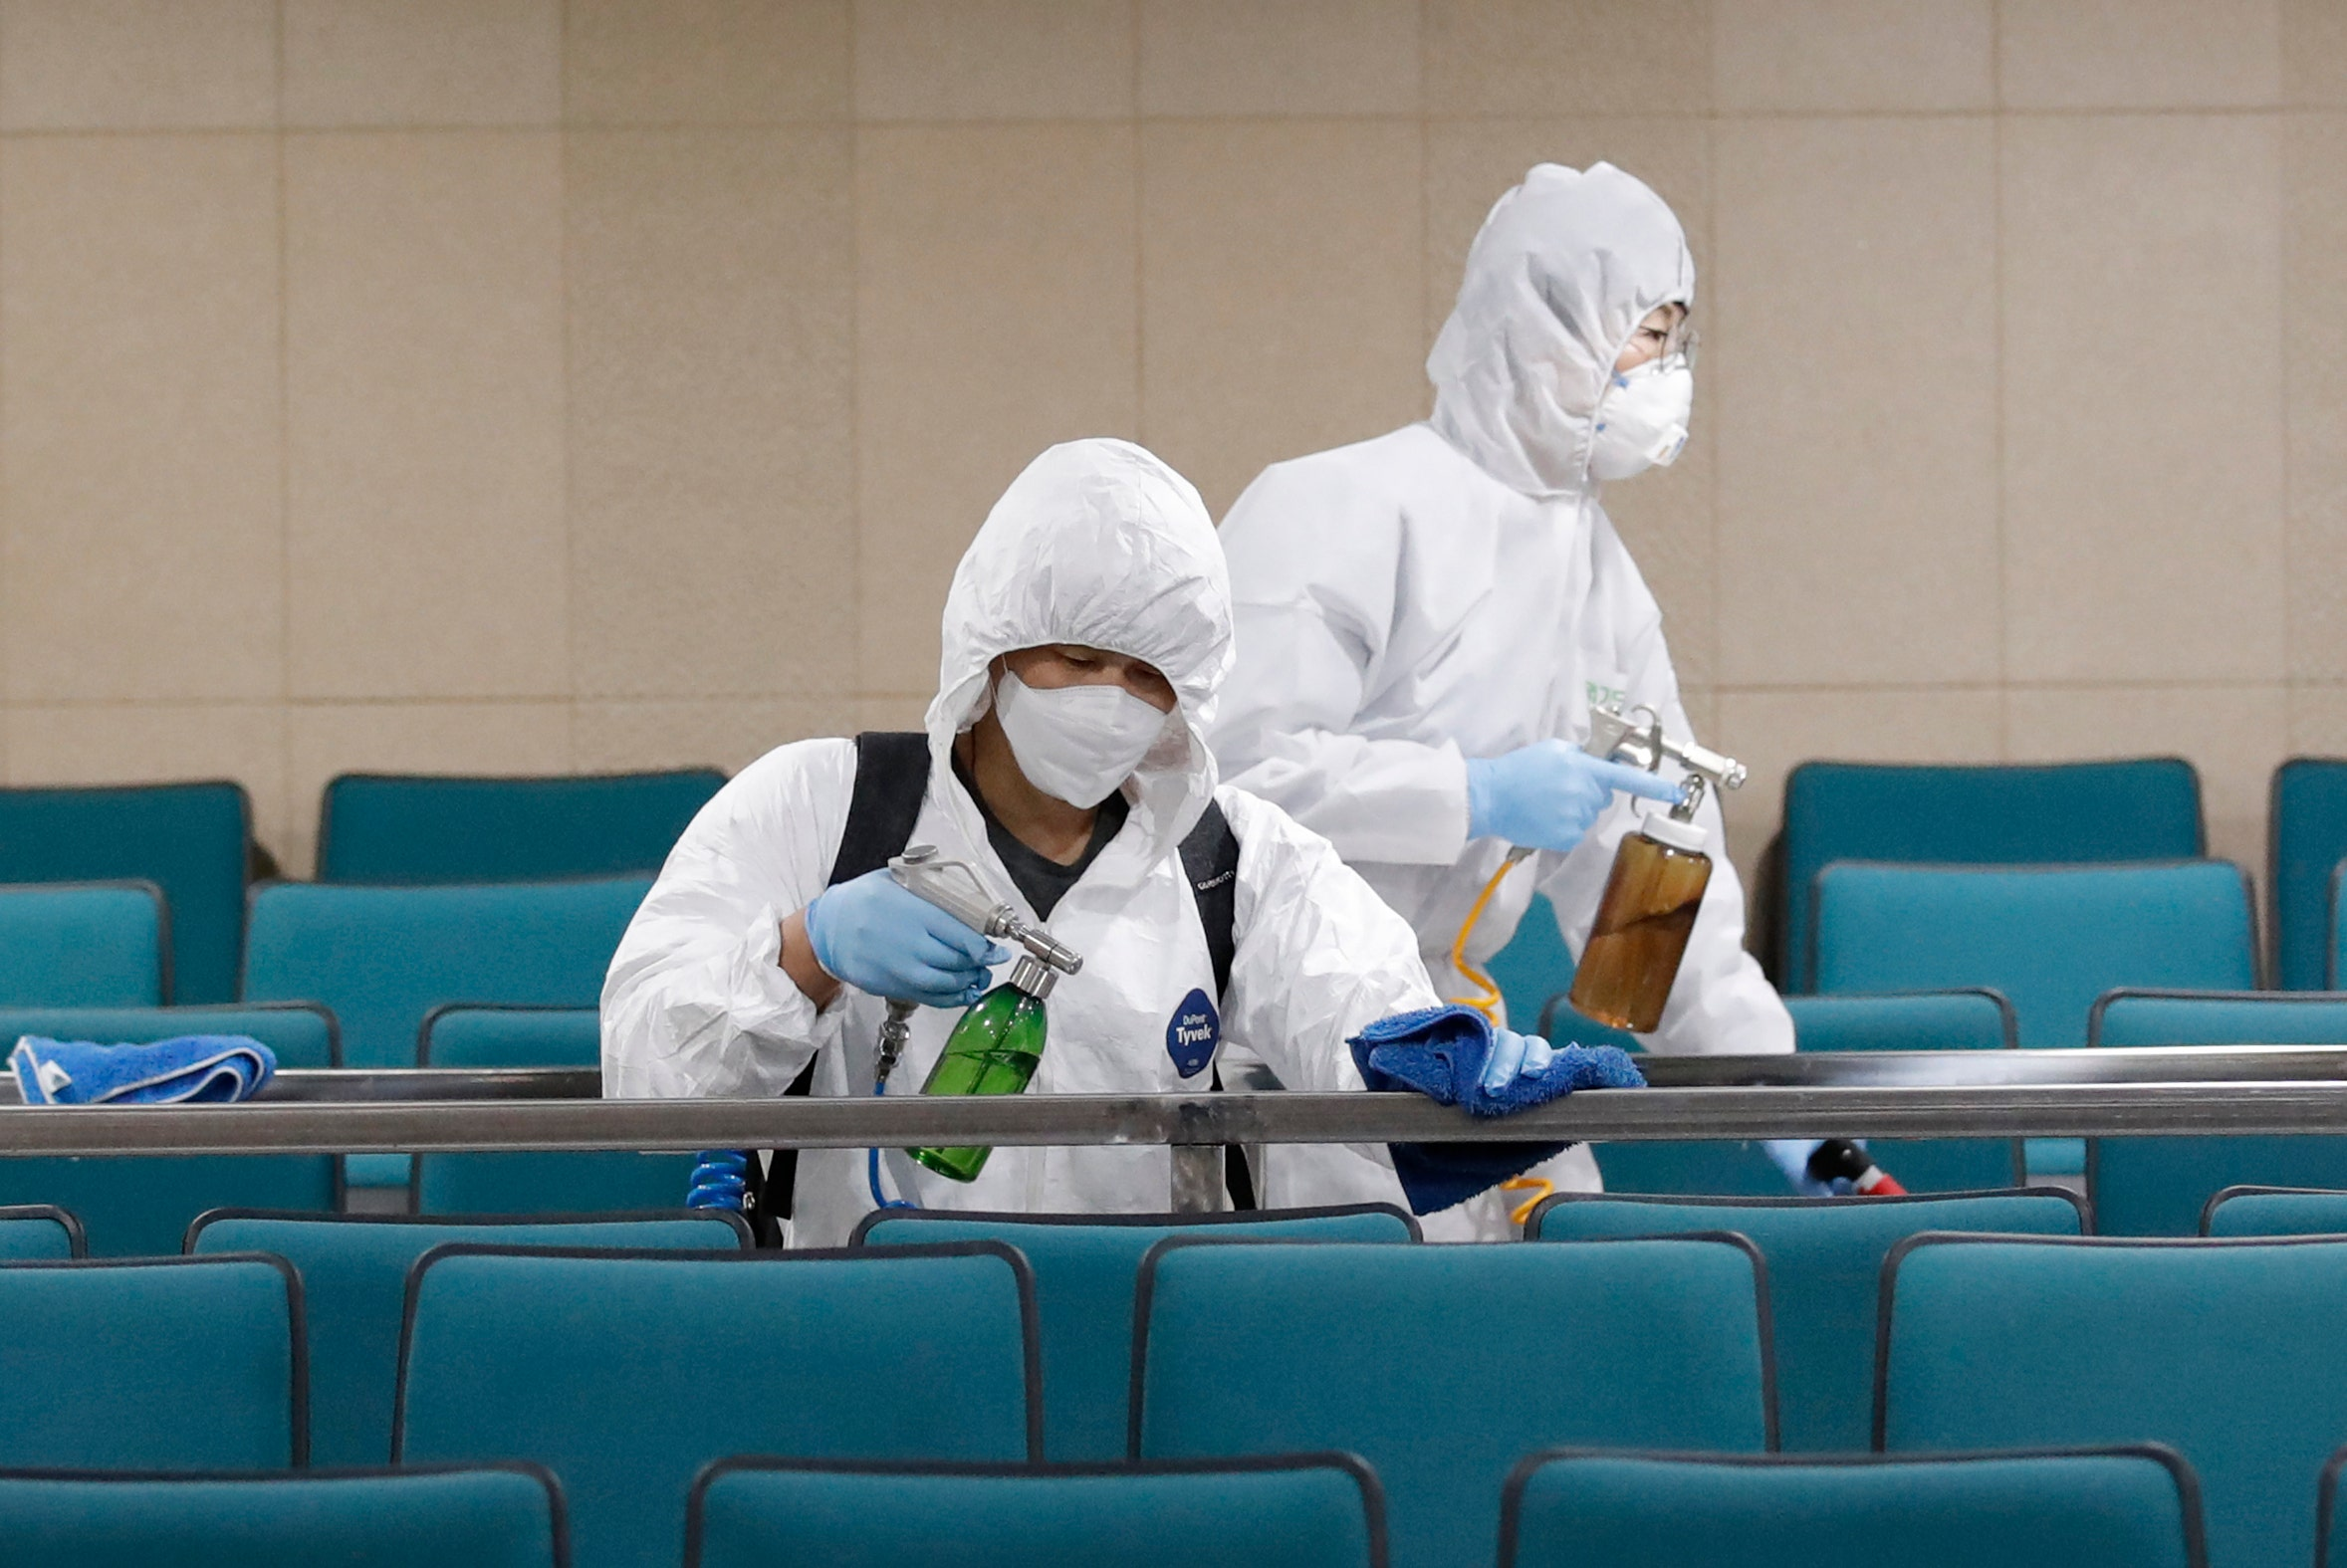 Coronavirus fears prompt spike in South Korea disinfection requests